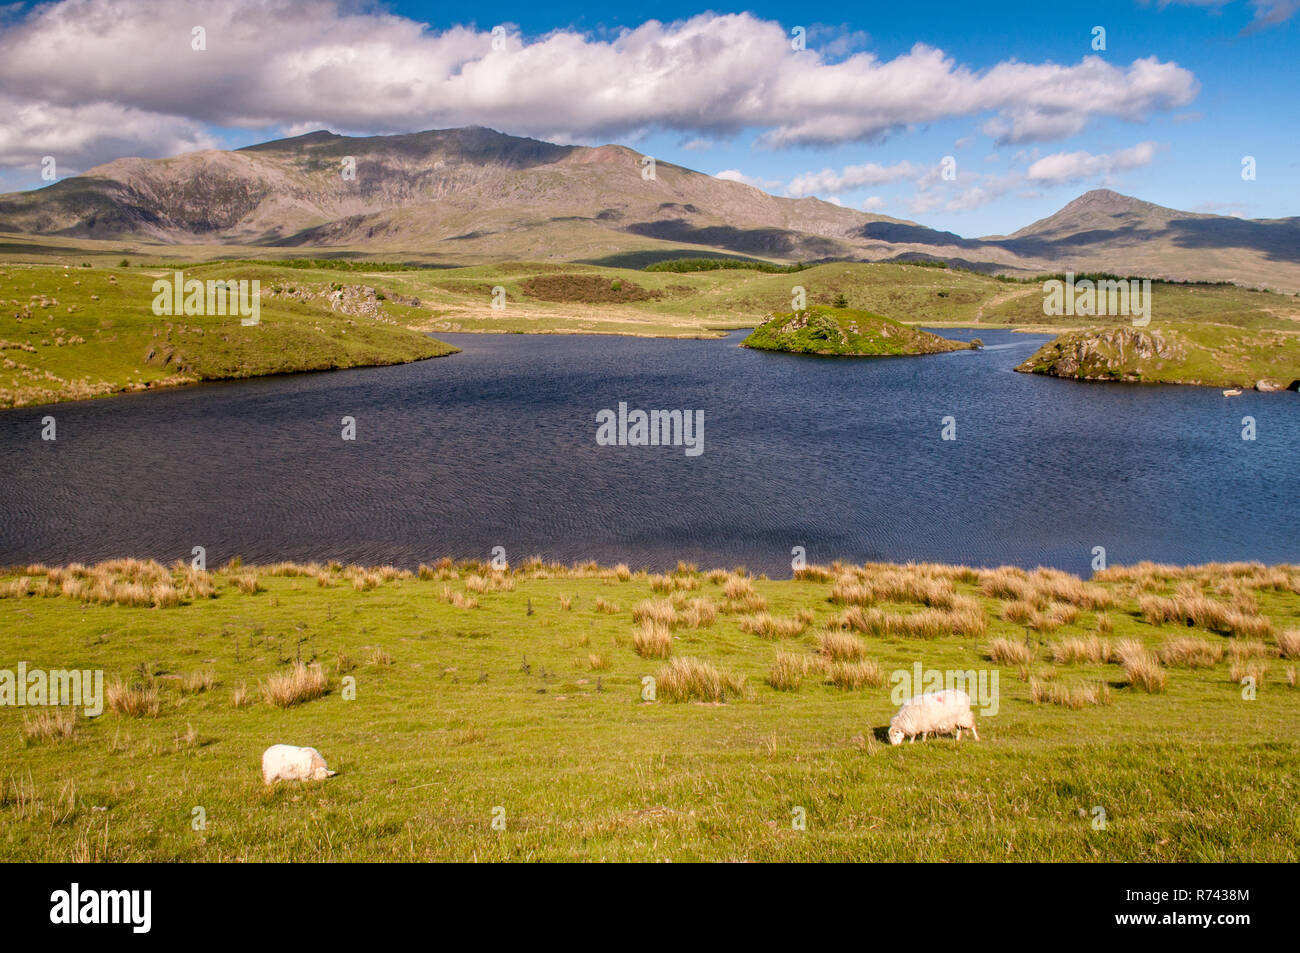 Snowdon mountain rises from the shores of Llyn y Dywarchen, a small lake ar Rhyd-Ddu in Snowdonia National Park, North Wales. Stock Photo